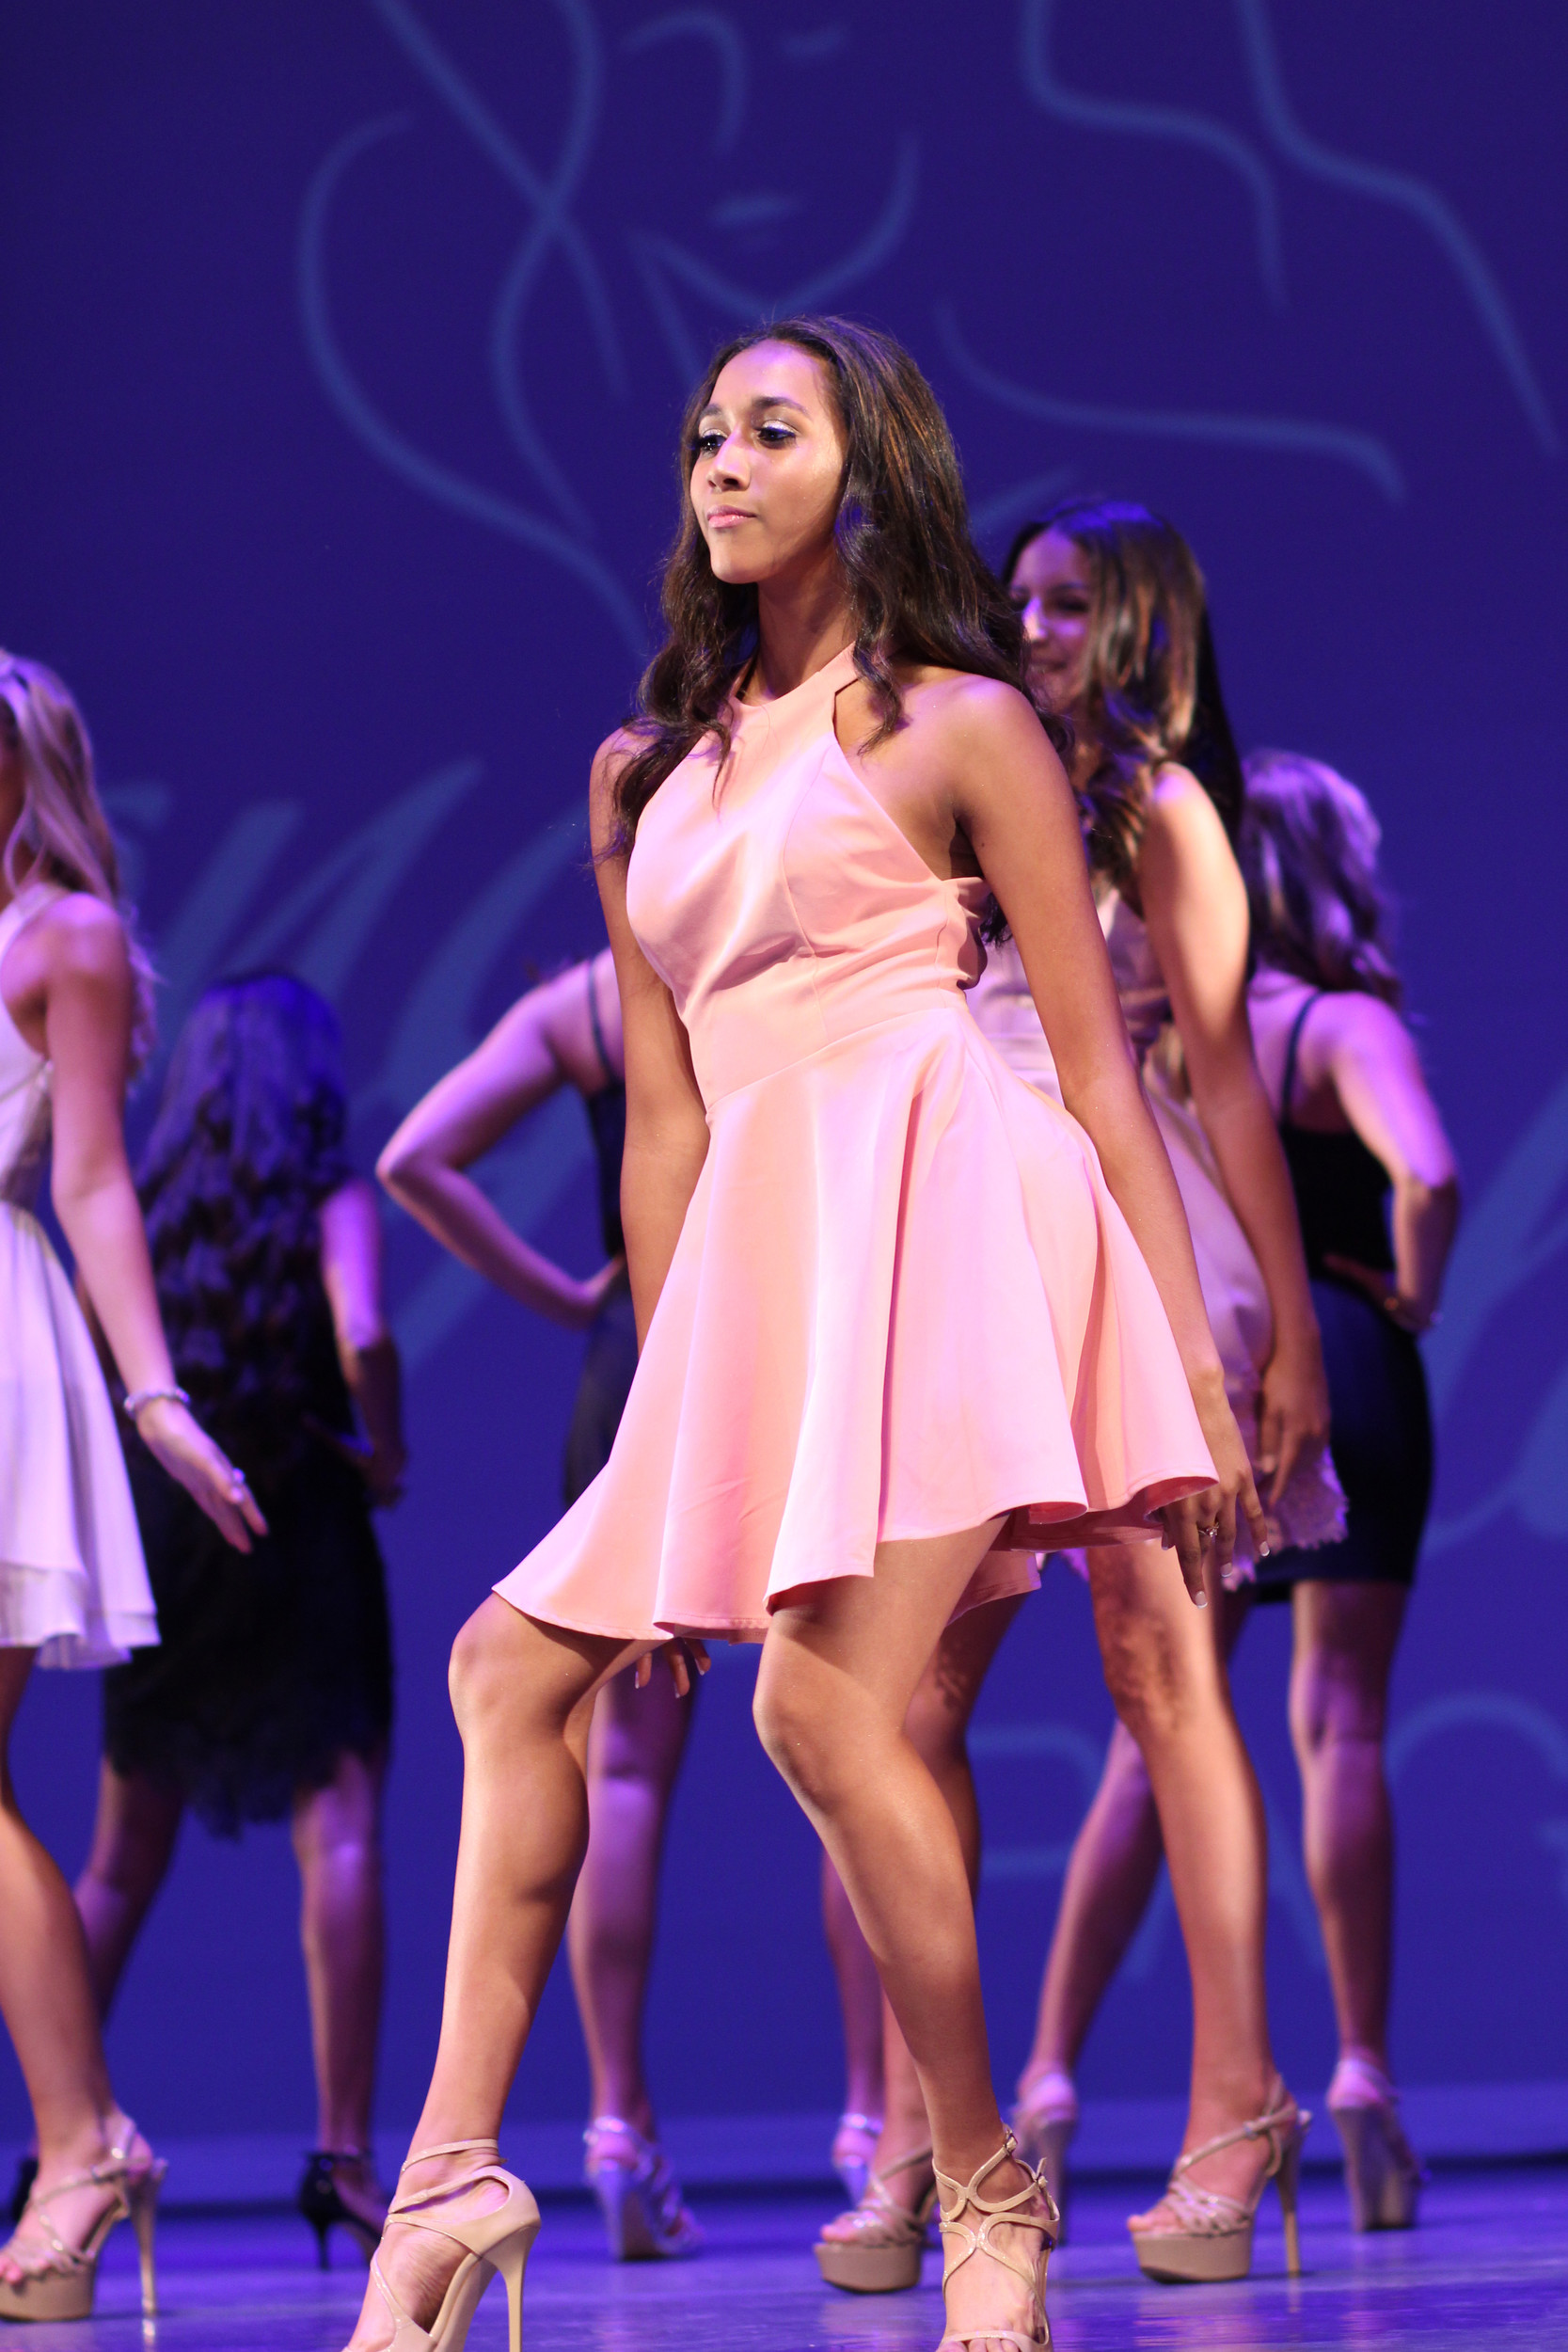 Neila Kalipersad, 14, of East Meadow, during the opening dance number.